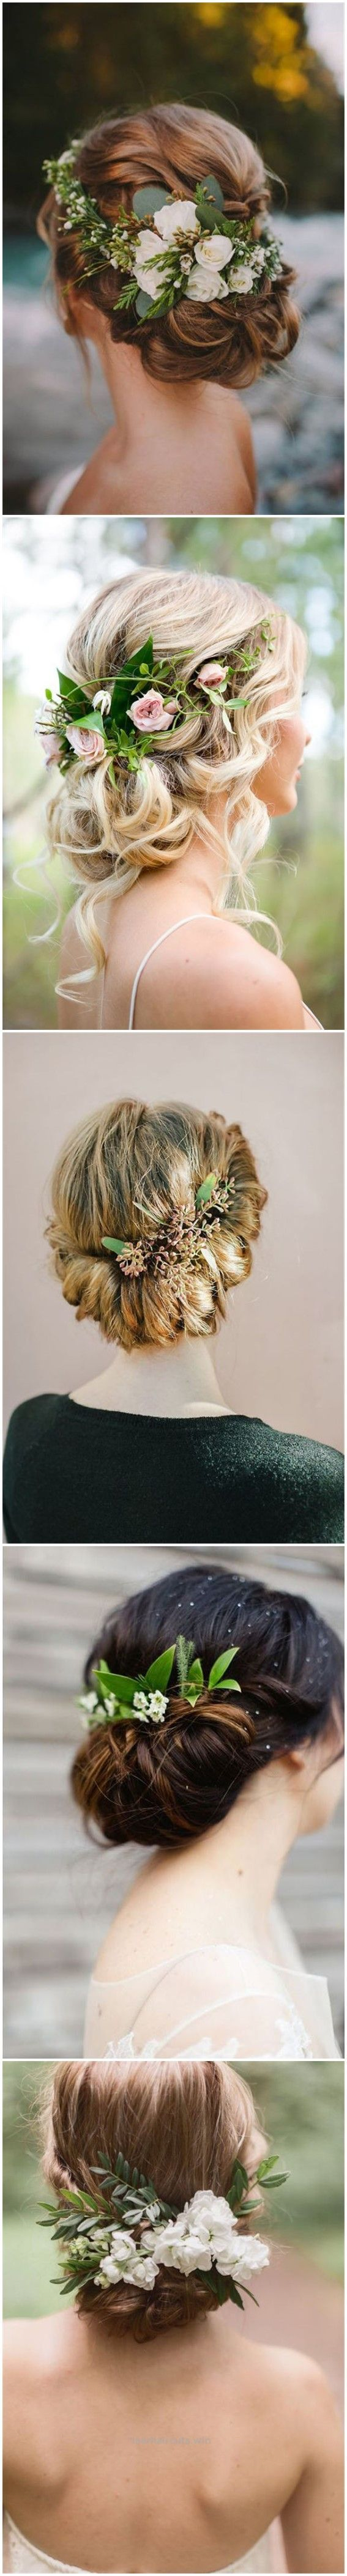 Adorable Wedding Hairstyles » 18 Wedding Updo Hairstyles with Greenery Decorations >>  ❤️ See more: www.weddinginclud…  The post  Wedding Hairstyles » 18 Wedding Updo Hairstyles with G ..